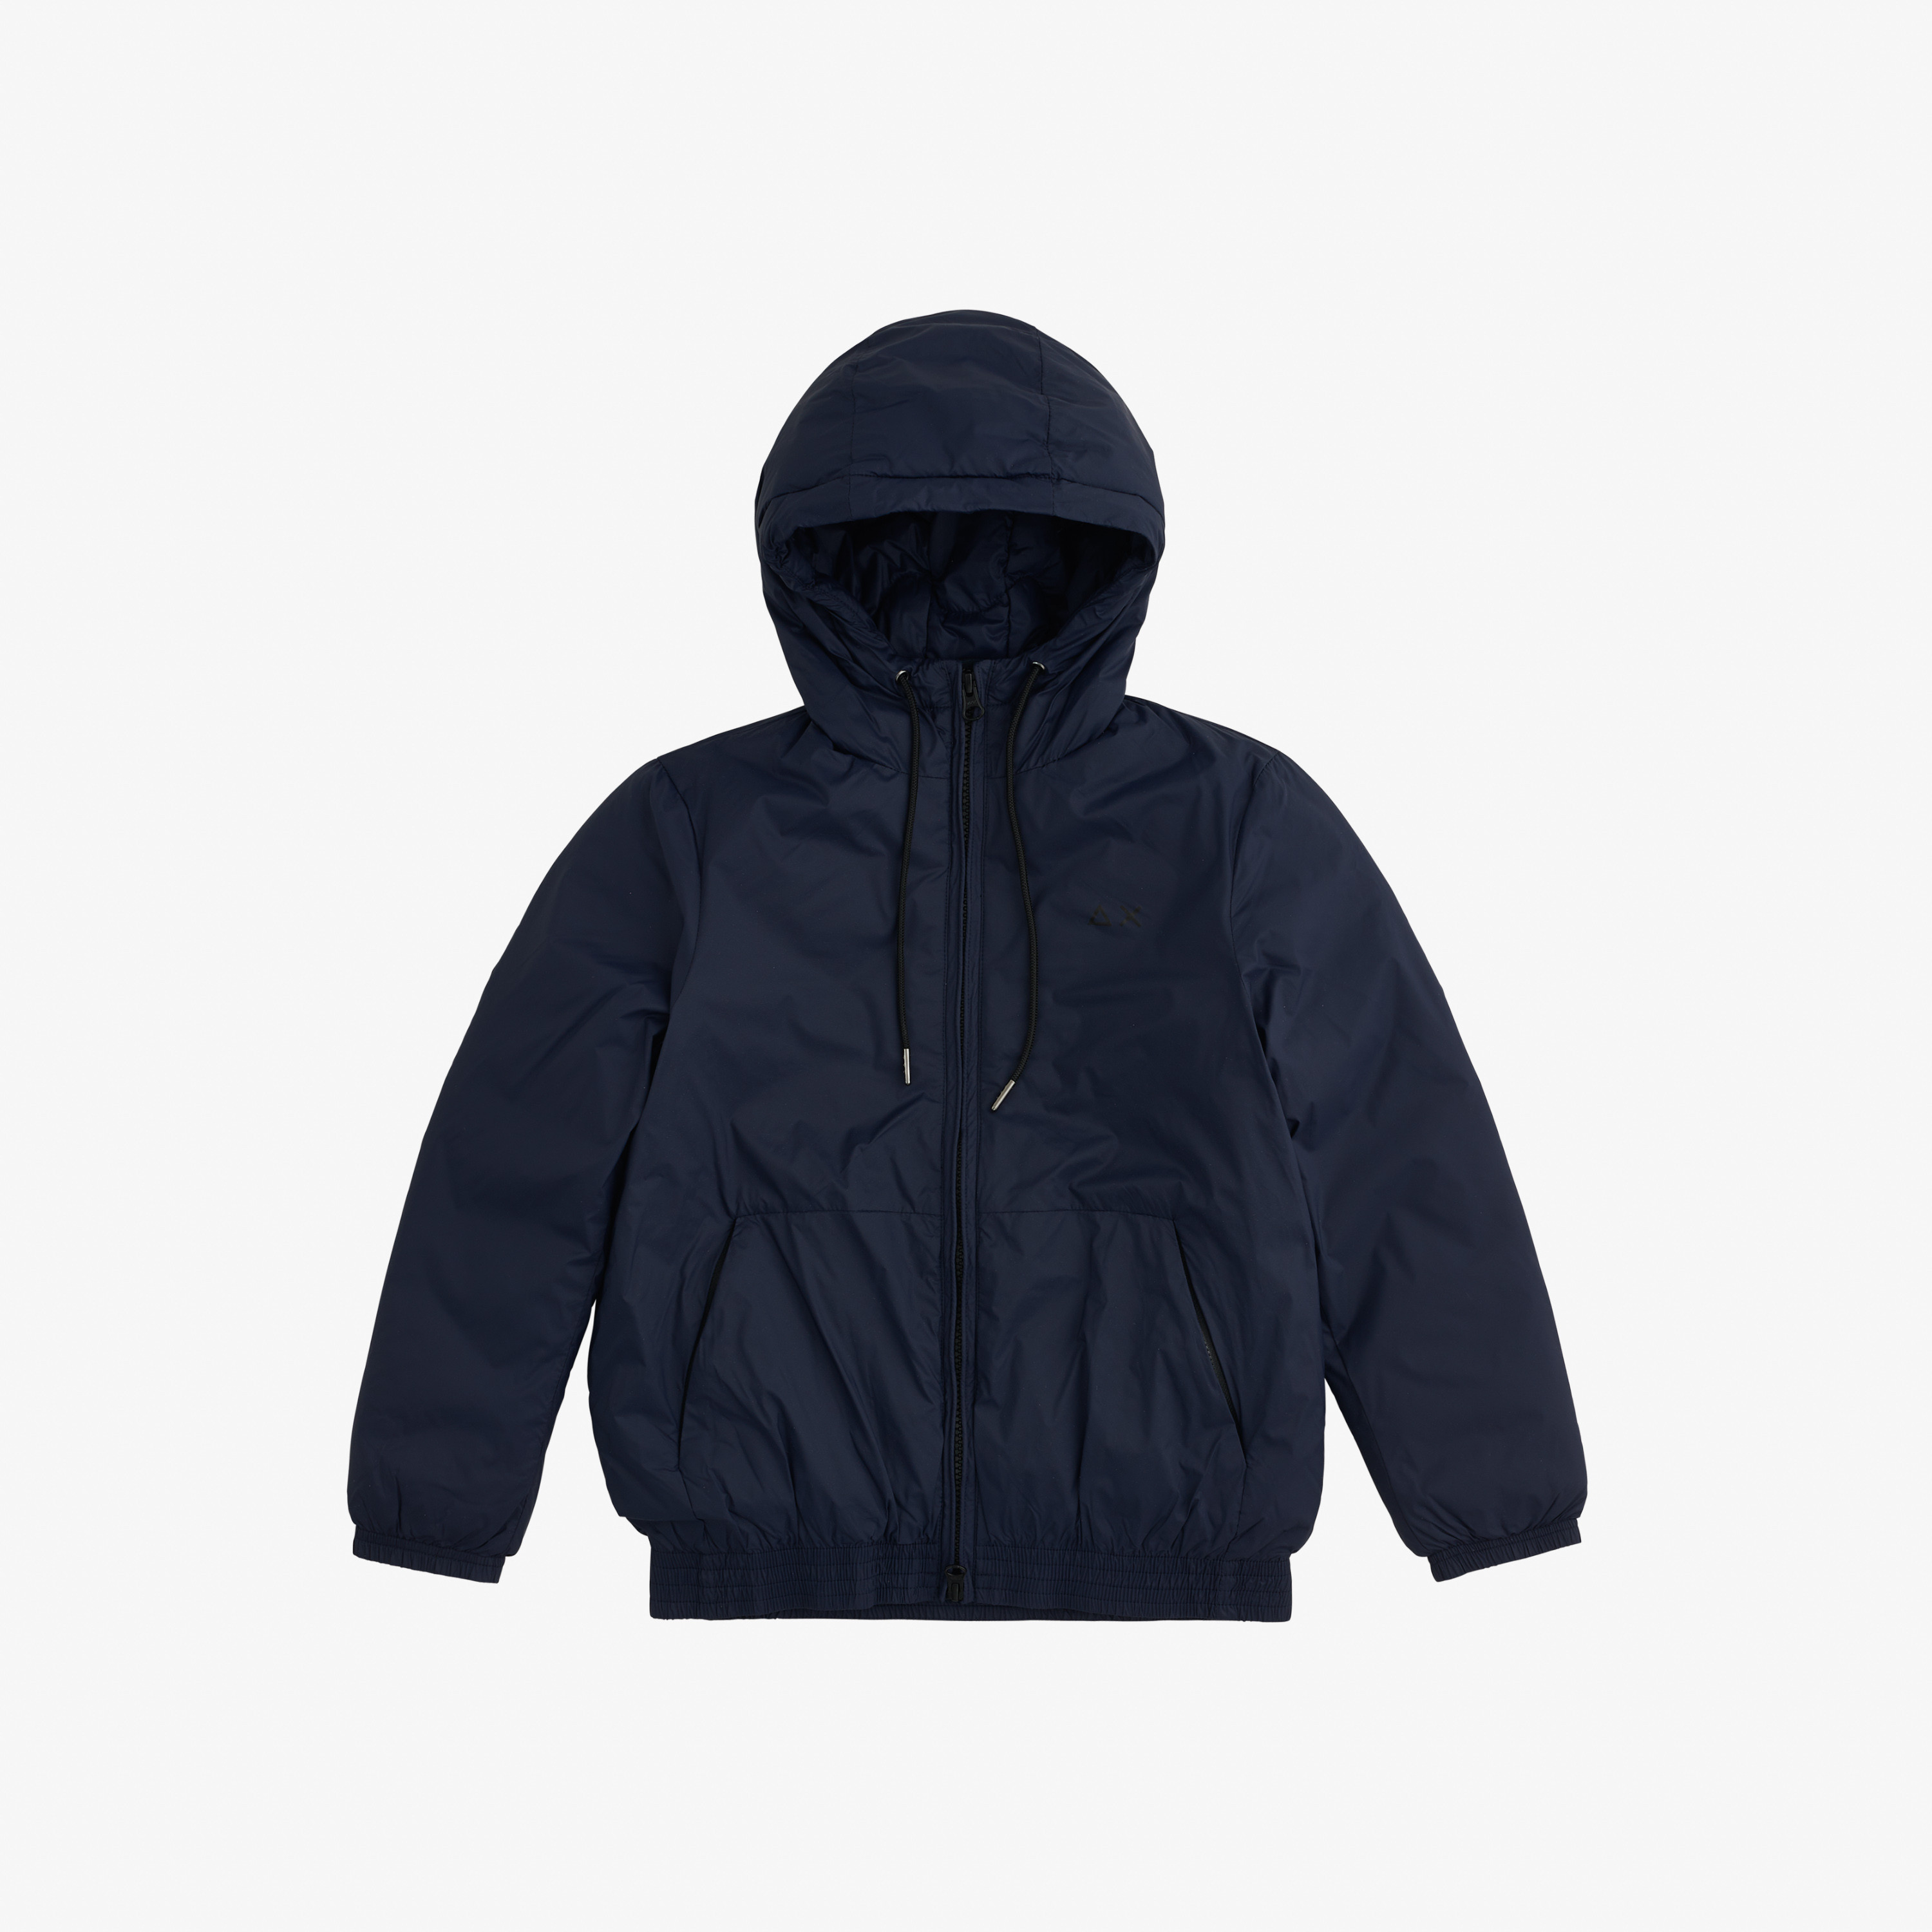 BOY'S RAIN PADDING JACKET NAVY BLUE